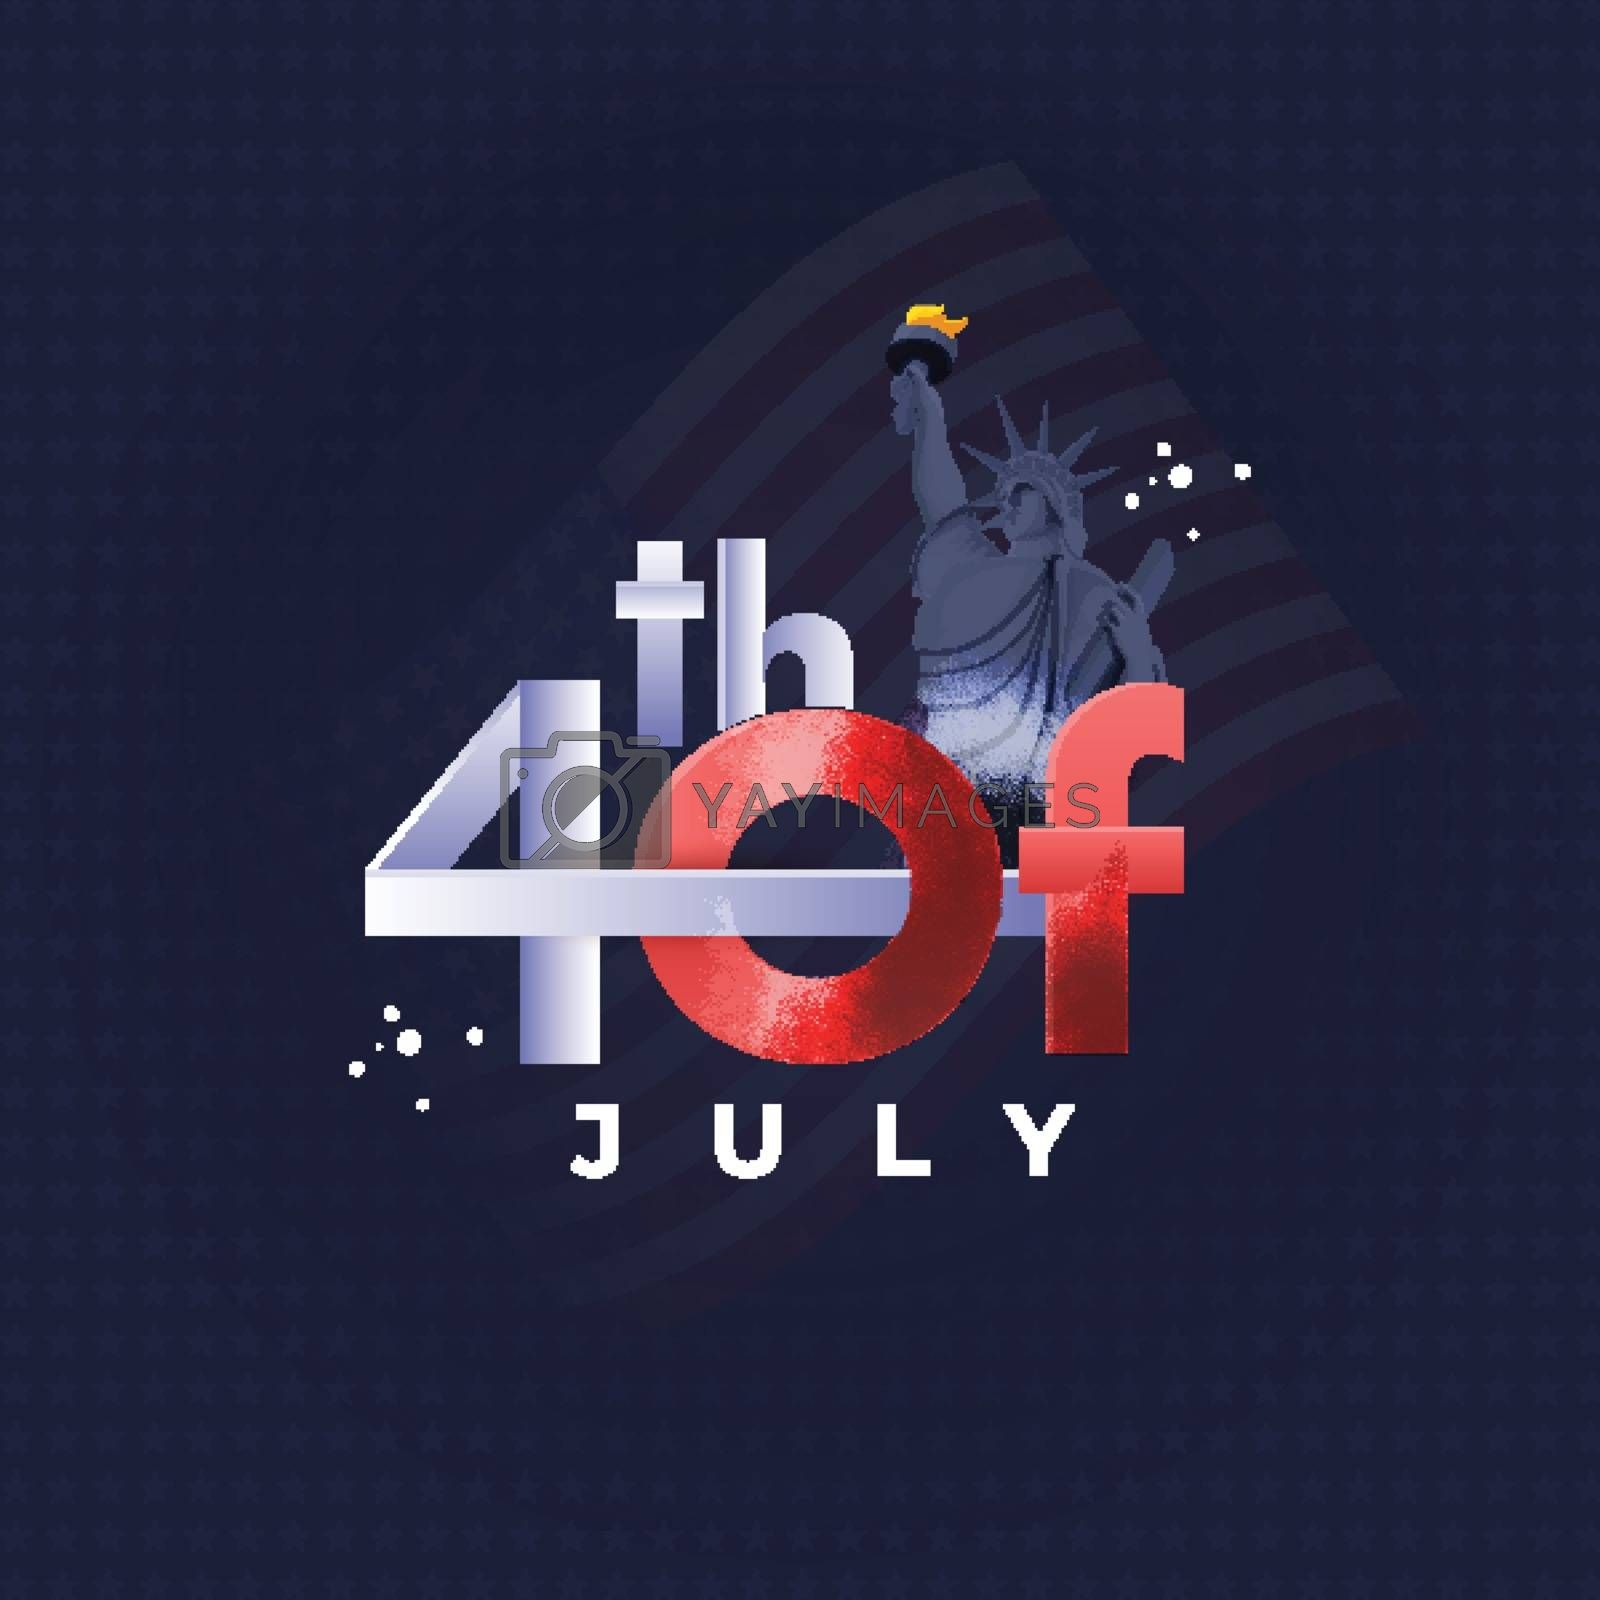 4th Of July text with Statue of liberty on blue star pattern background for Independence Day celebration. Can be used as poster or template design.